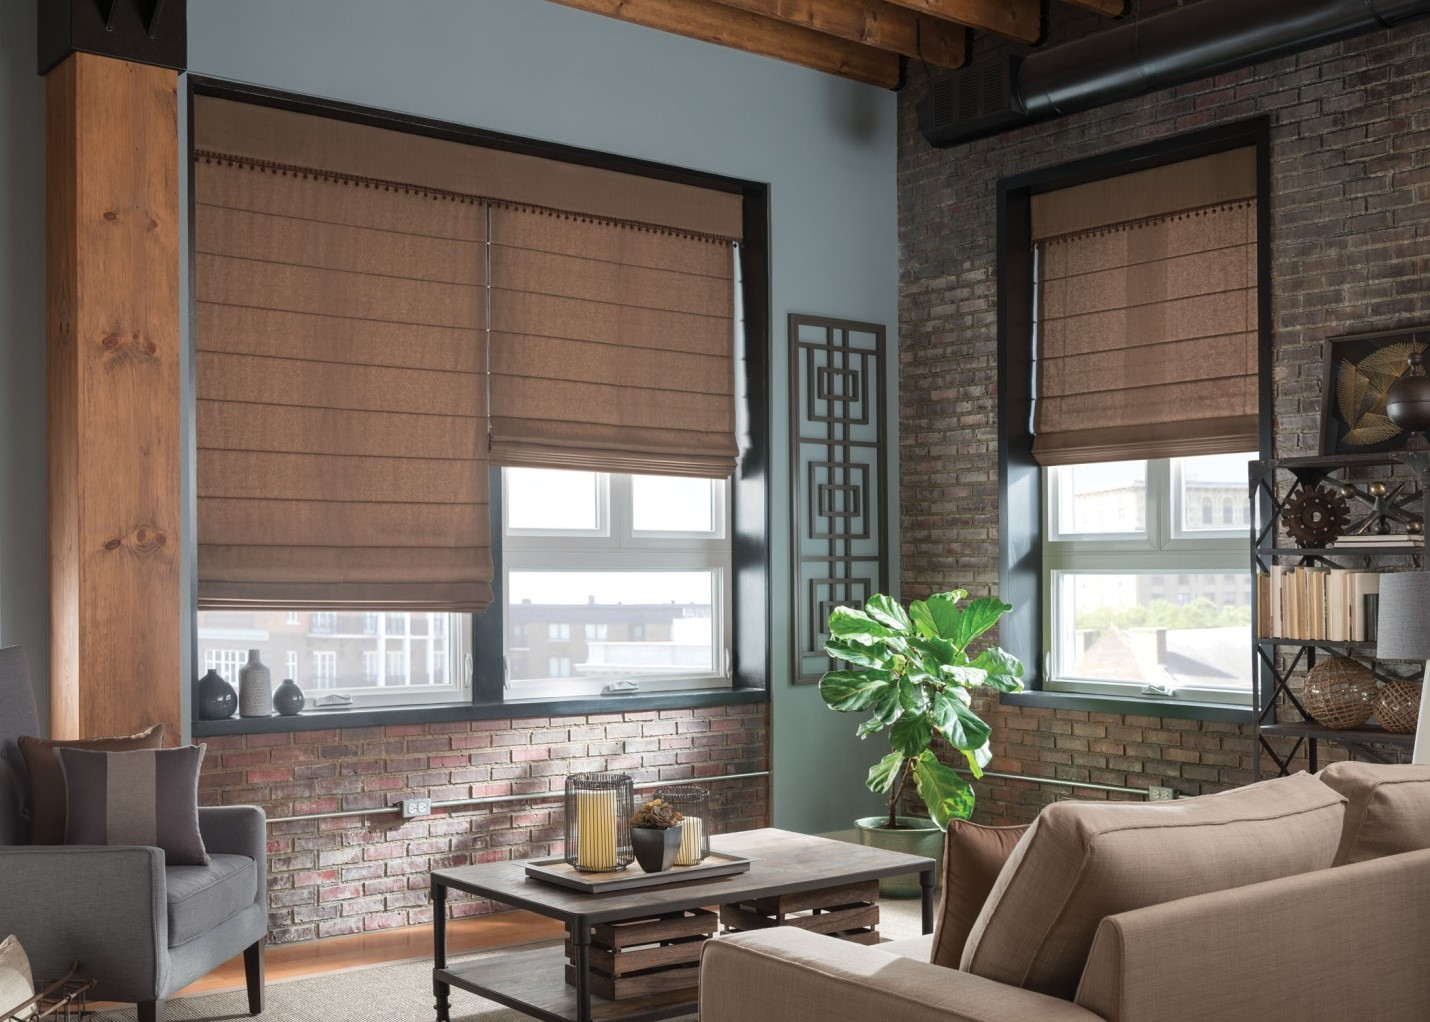 How to get smart window shades with in your budget for Motorized blinds shades